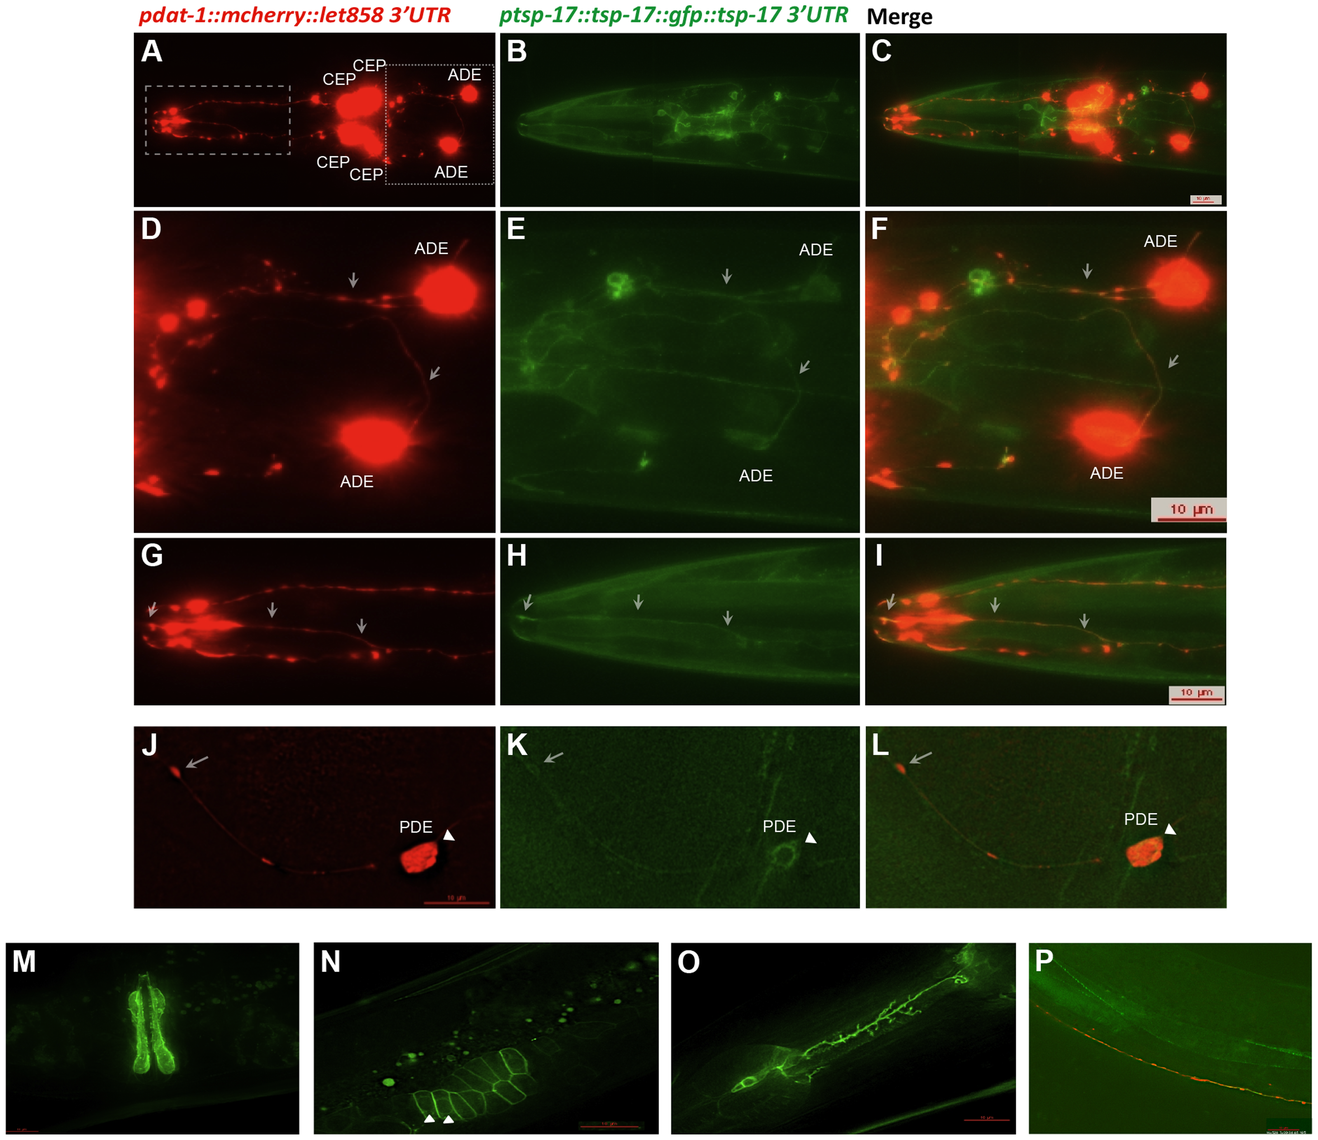 TSP-17::GFP expression.